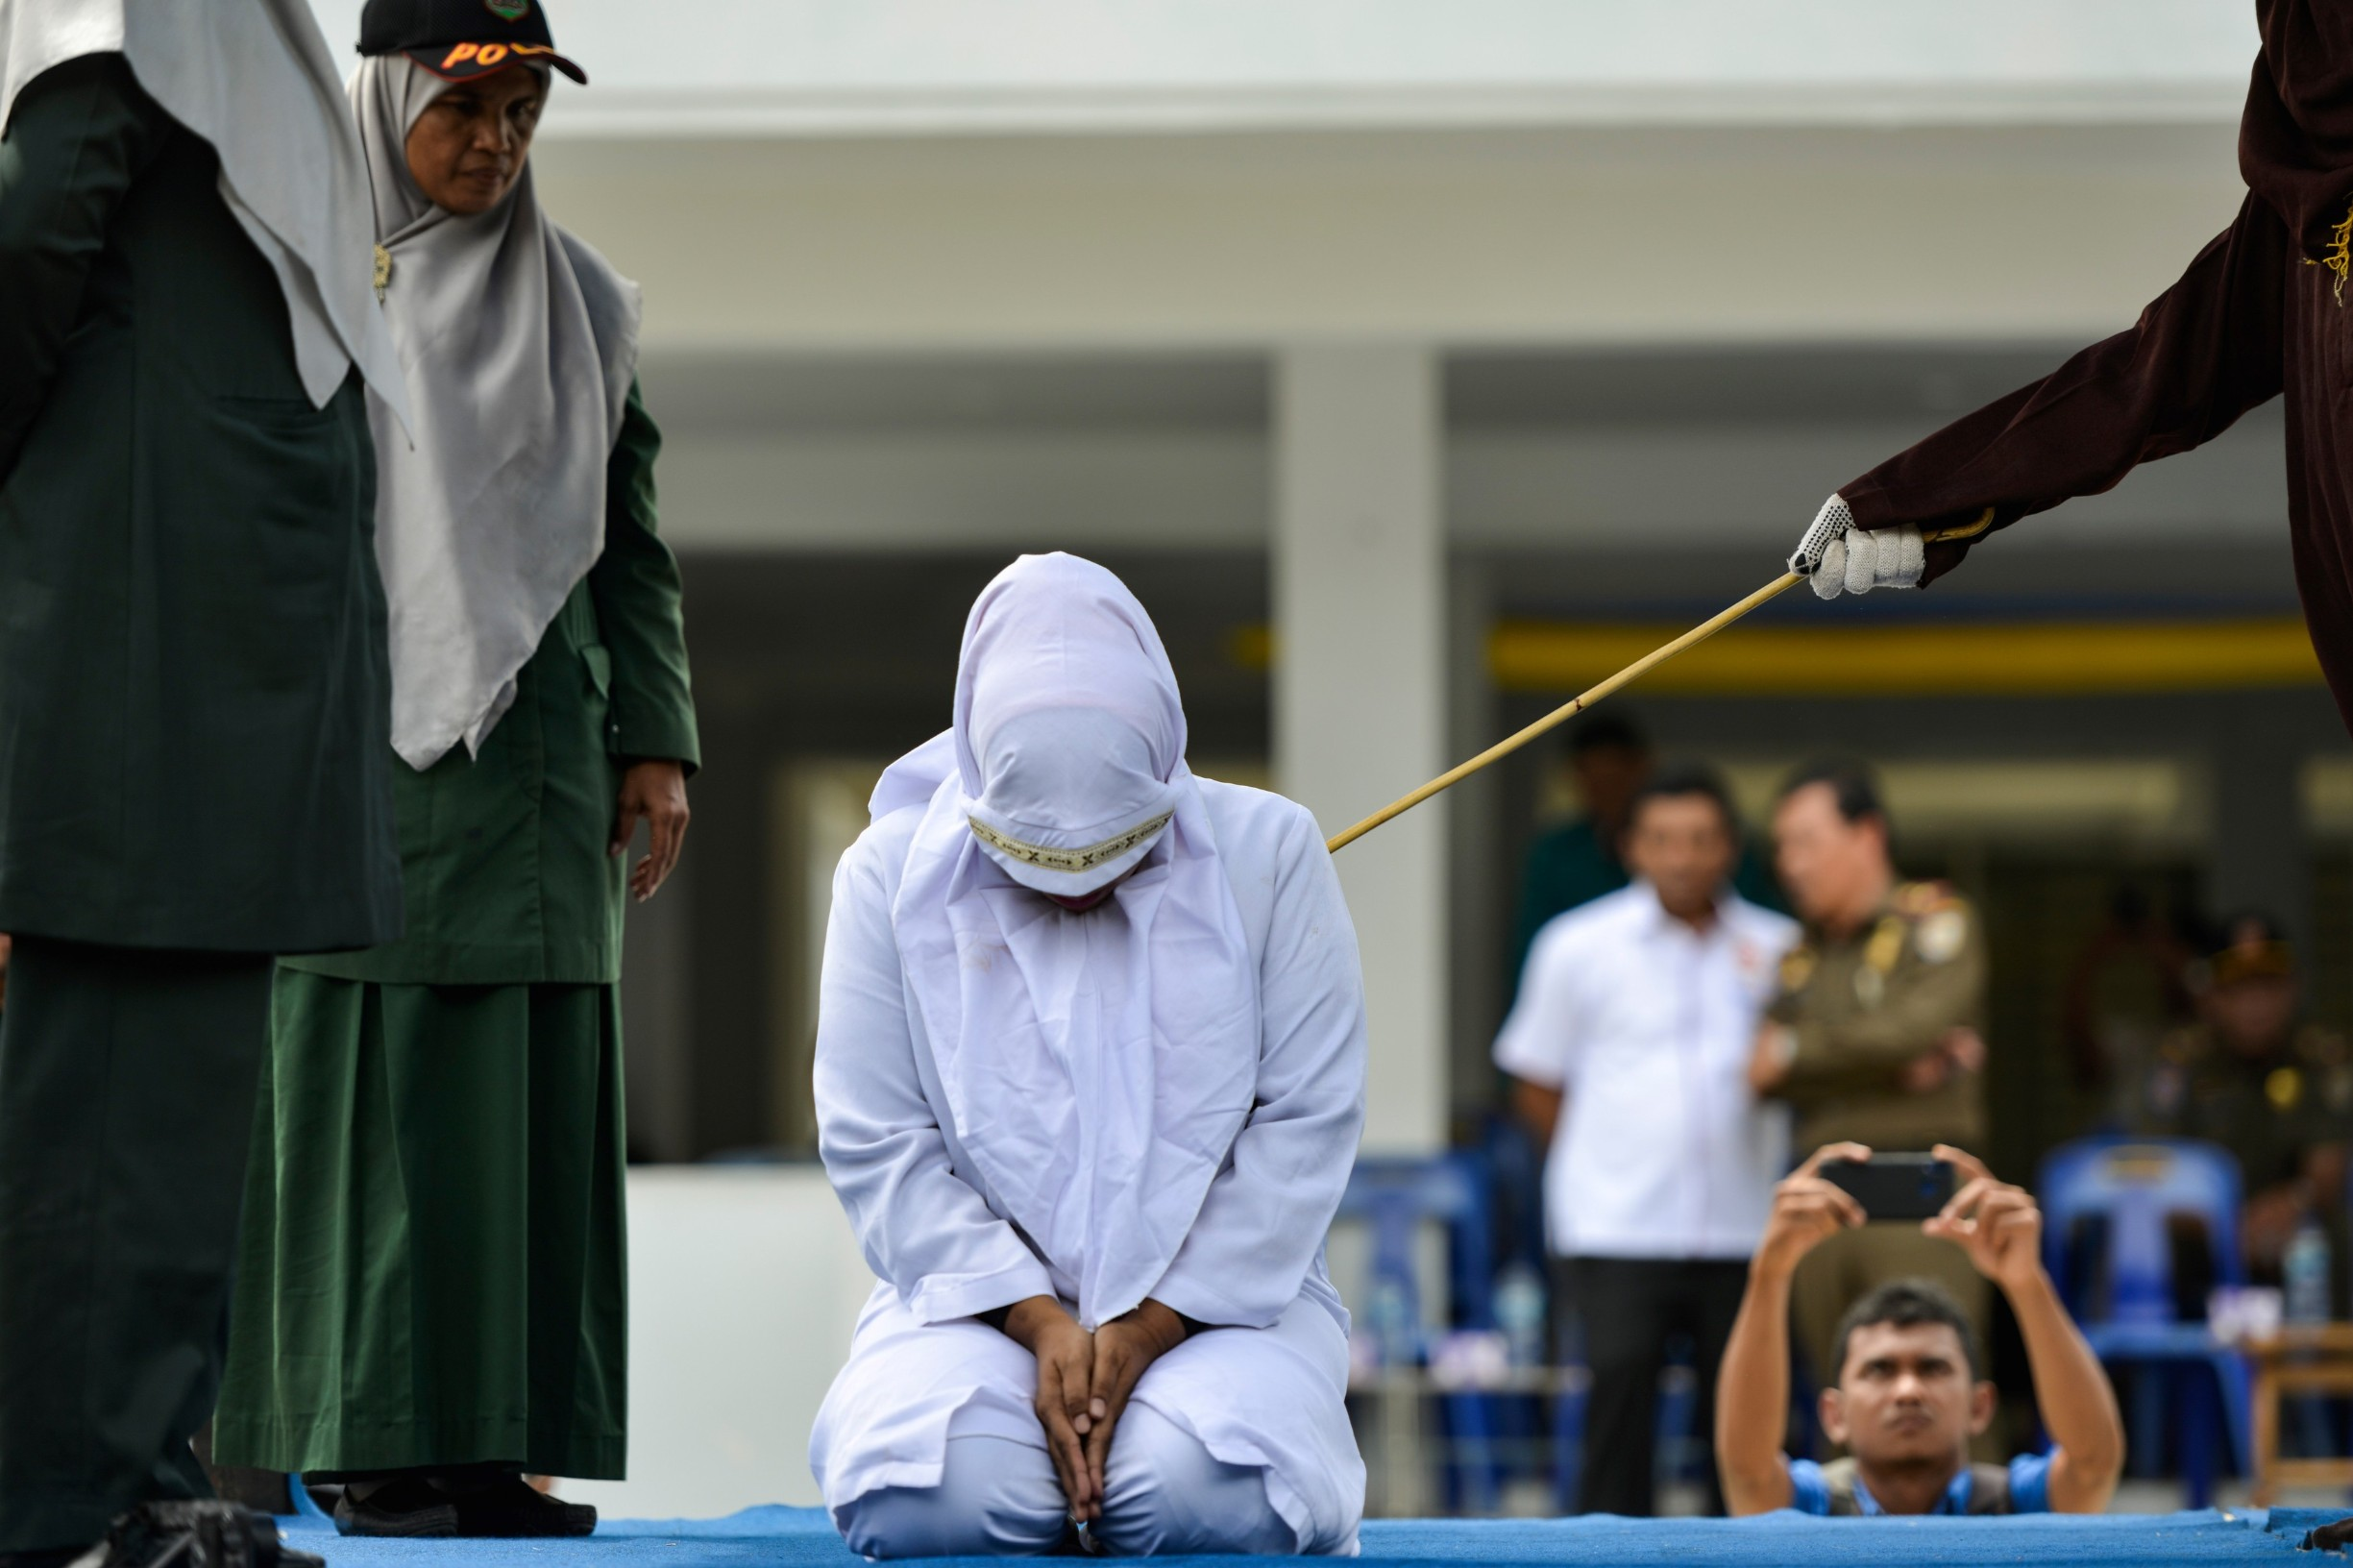 A woman is whipped in public by a member of the Sharia police in Banda Aceh on October 31, 2019, after being caught having an affair with Aceh Ulema Council (MPU) member Mukhlis. An Indonesian man working for an organisation which helped draft strict religious laws ordering adulterers to be flogged was himself publically whipped on October 31 after he was caught having an affair with a married woman., Image: 480105889, License: Rights-managed, Restrictions: , Model Release: no, Credit line: CHAIDEER MAHYUDDIN / AFP / Profimedia